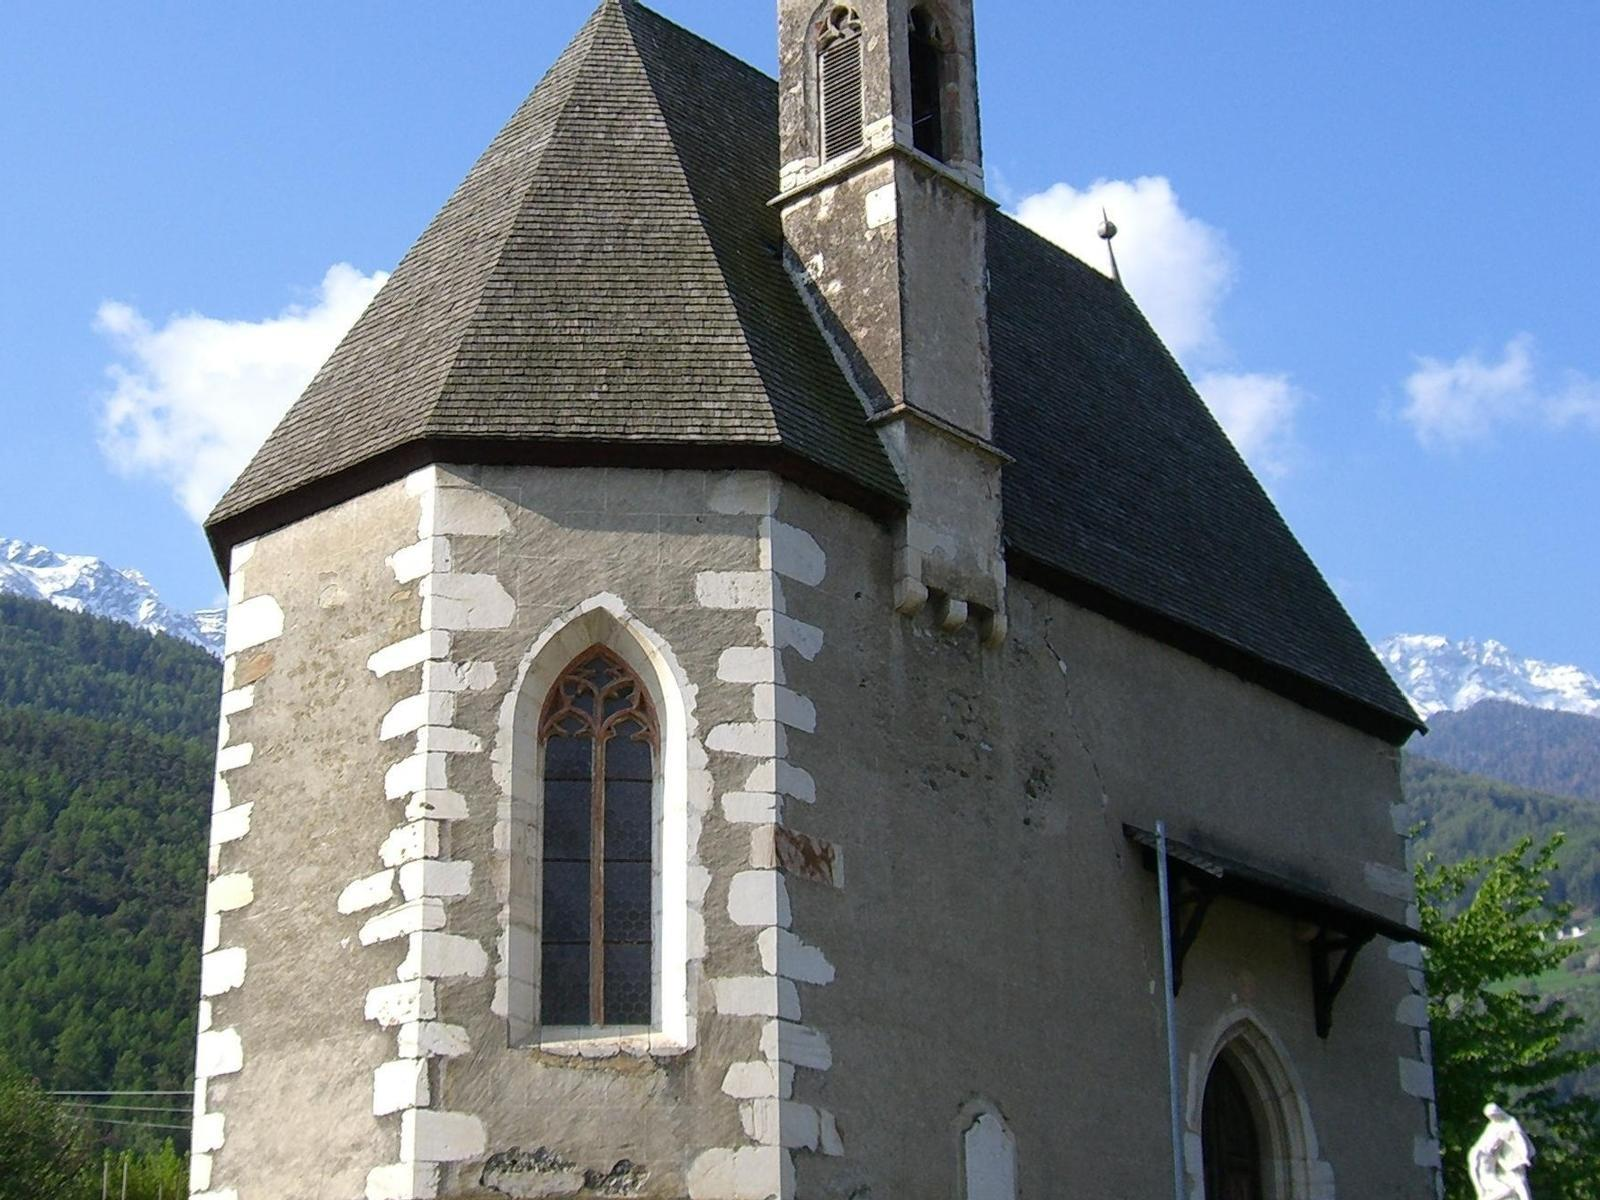 Church of St. Valpurga, Covelano/Göflan